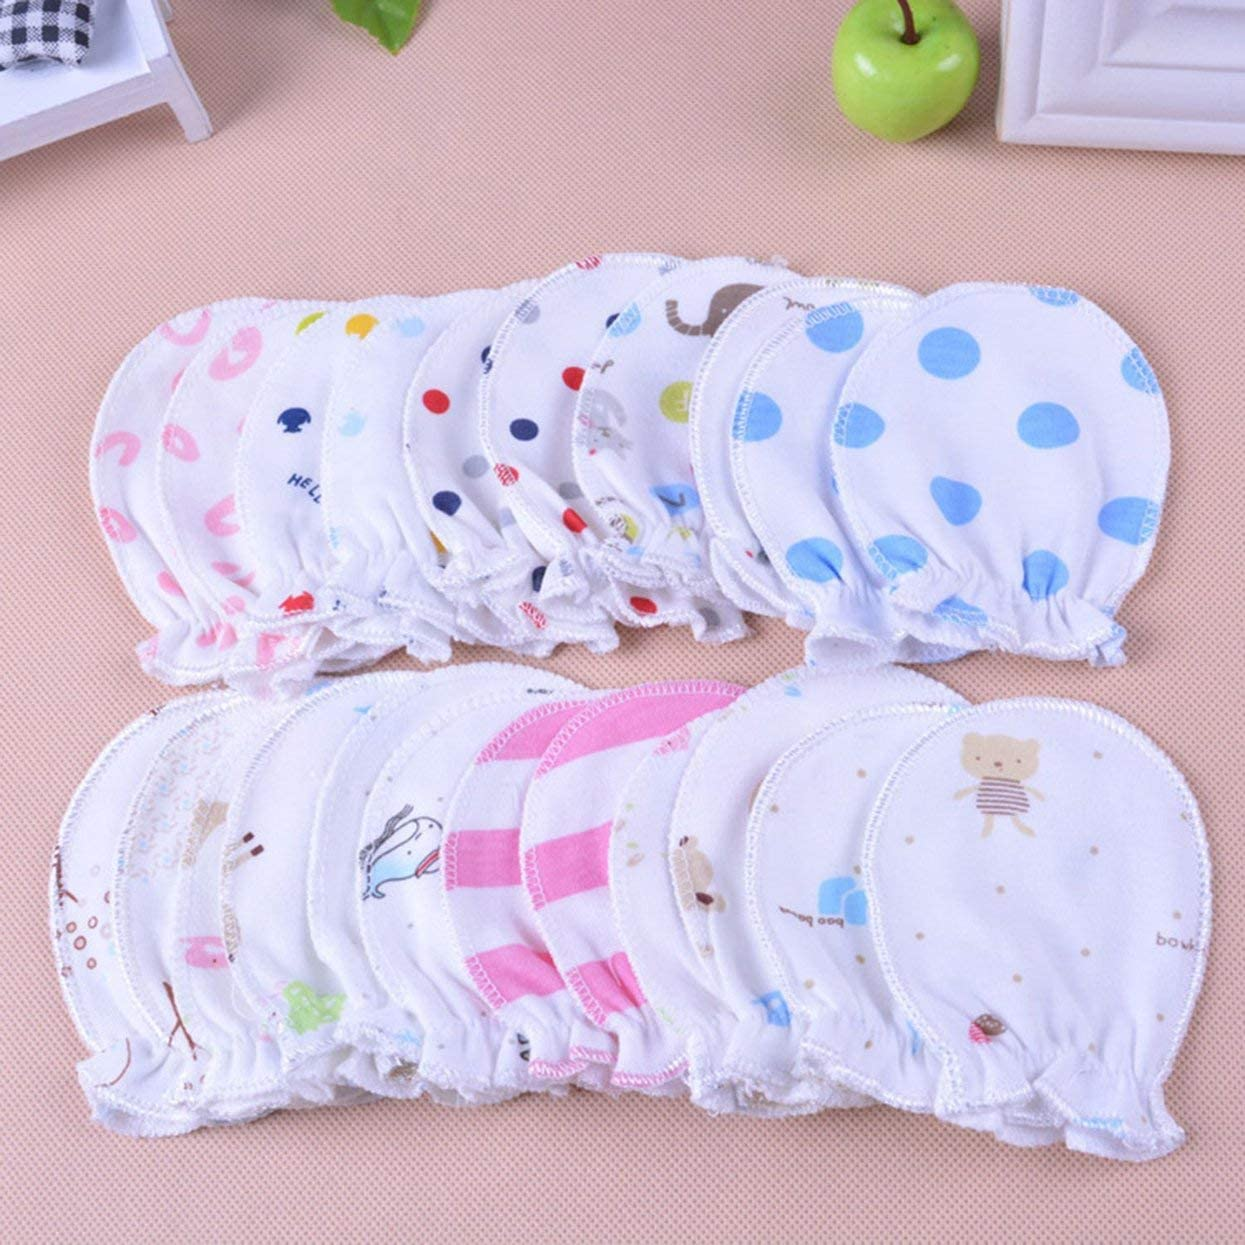 ShenyKan 1 Pair Baby Girl Boy Anti-scratch Gloves Cute Soft Unisex Newborn Infant Handguard No Scratch Mittens Gloves